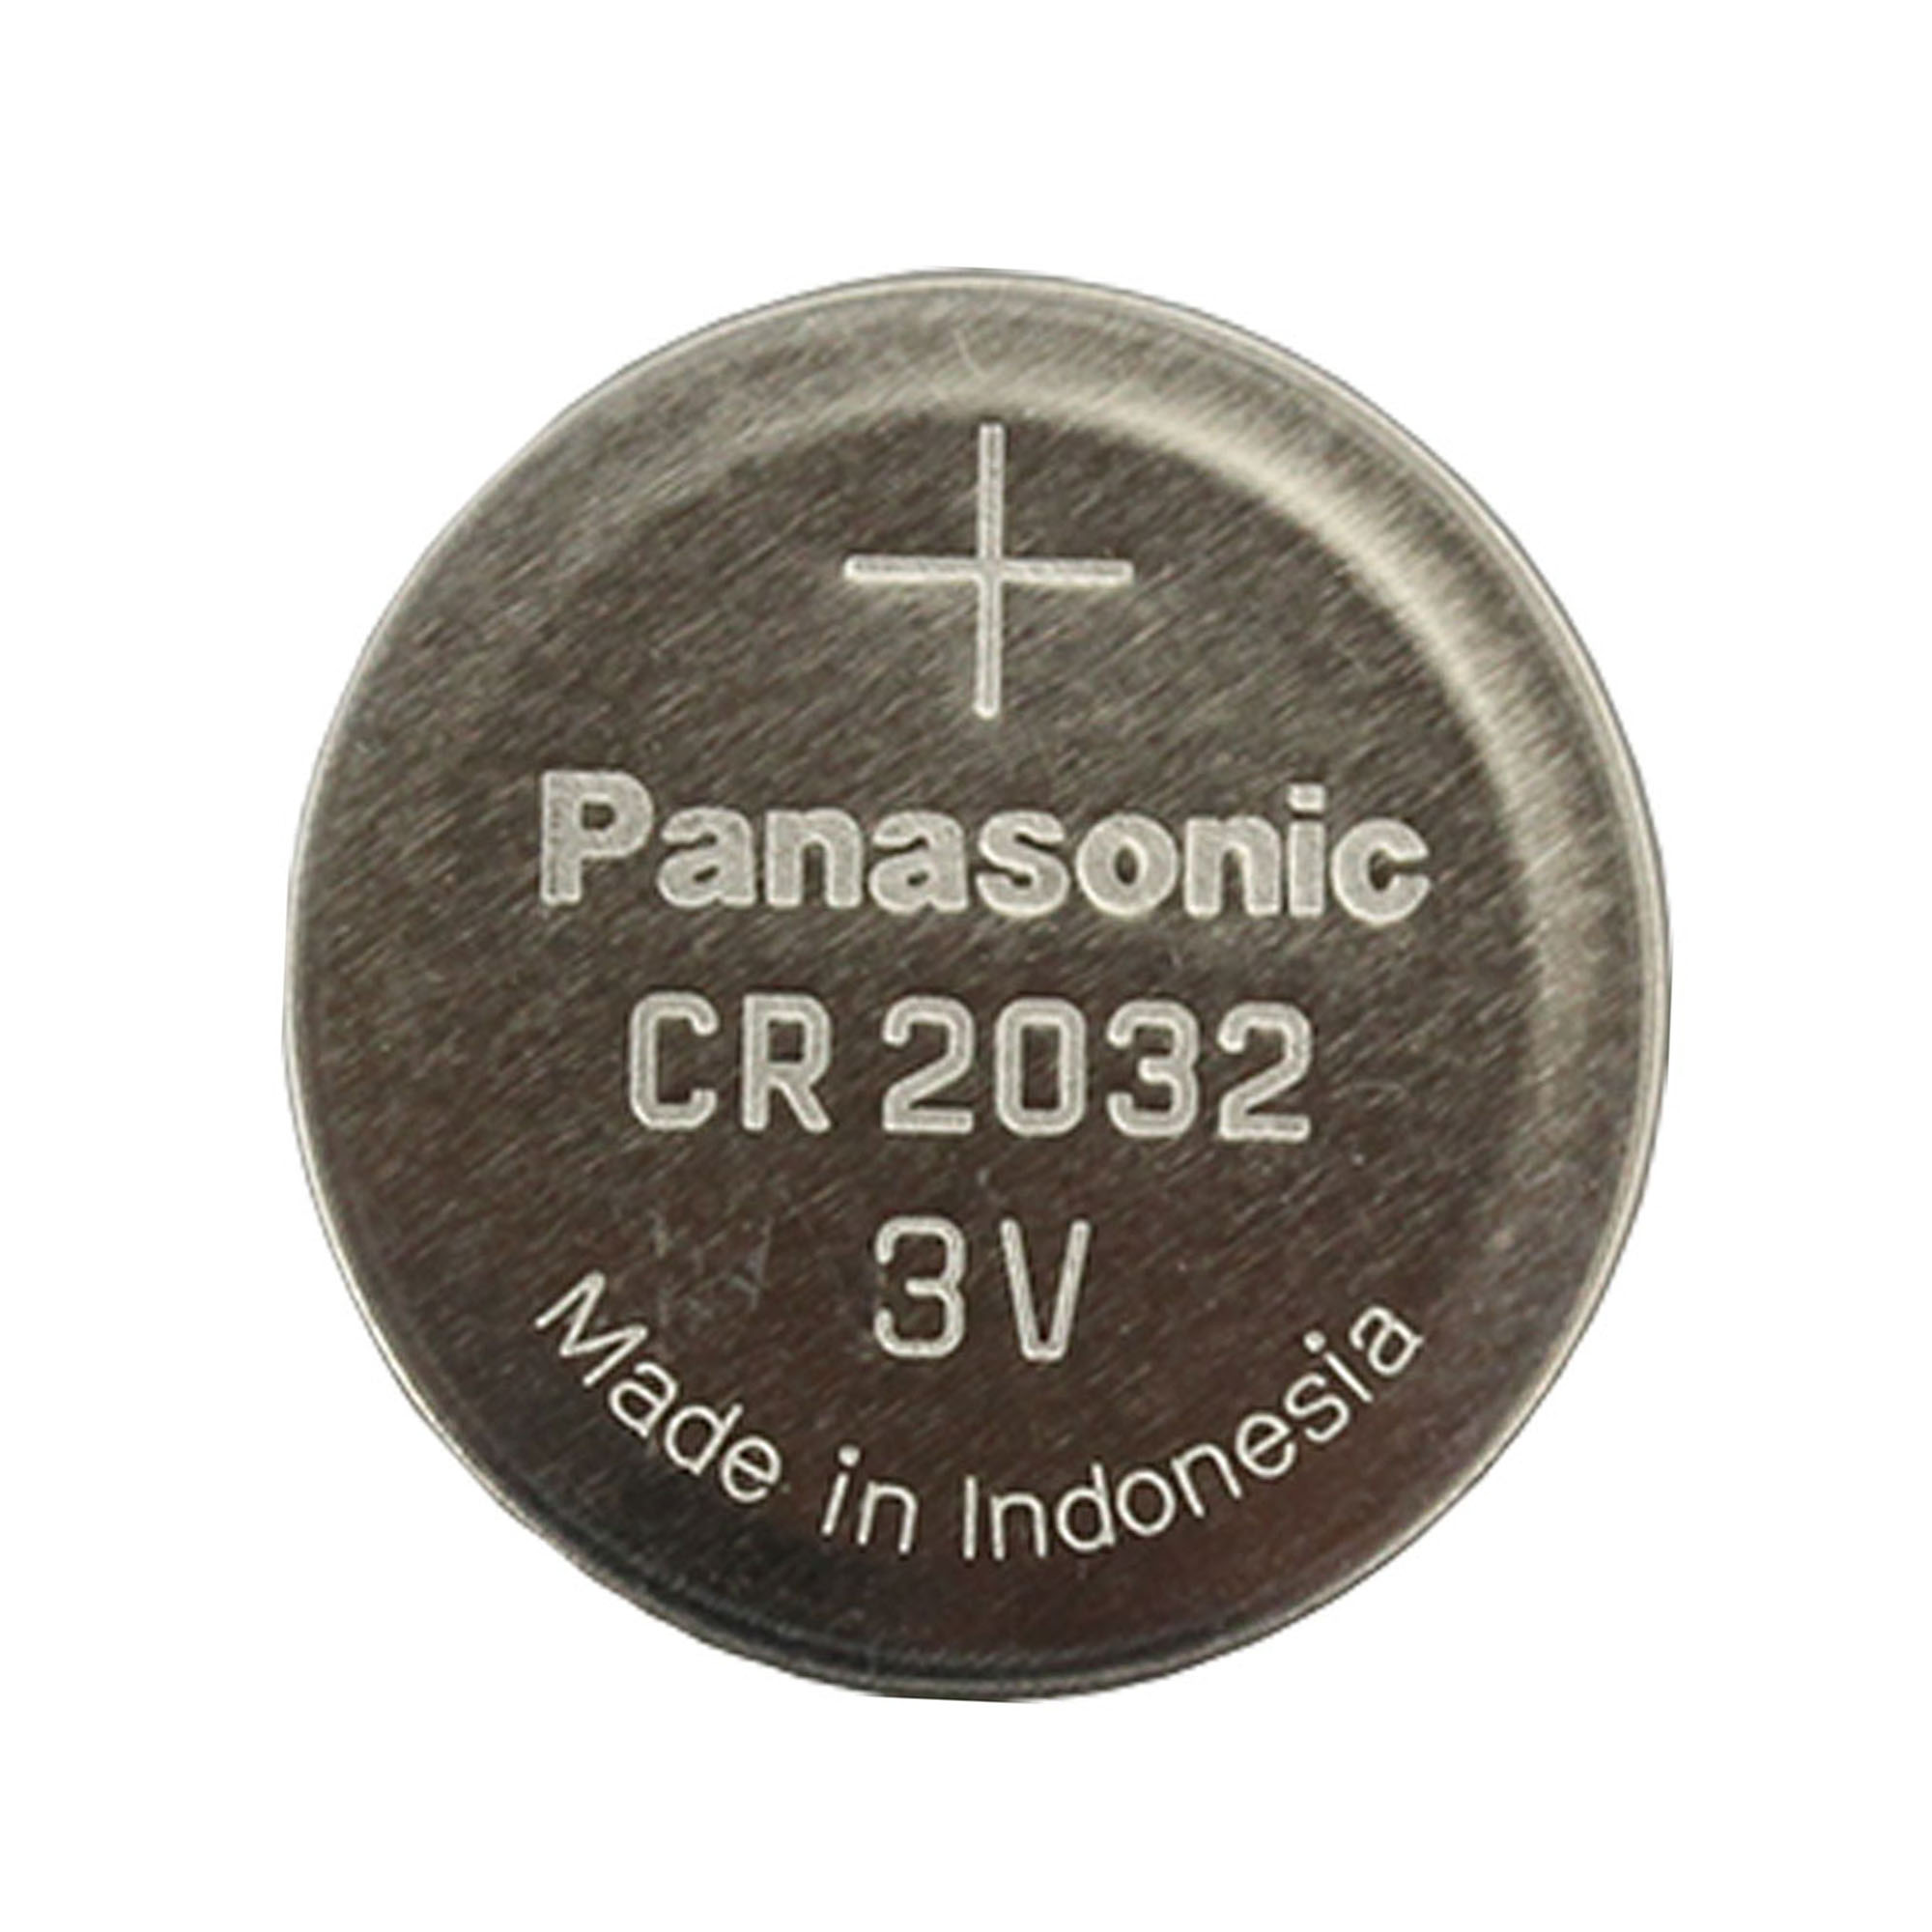 Batterie Cr2032 Cr2032 Panasonic 3 Volt Lithium Coin Cell Battery